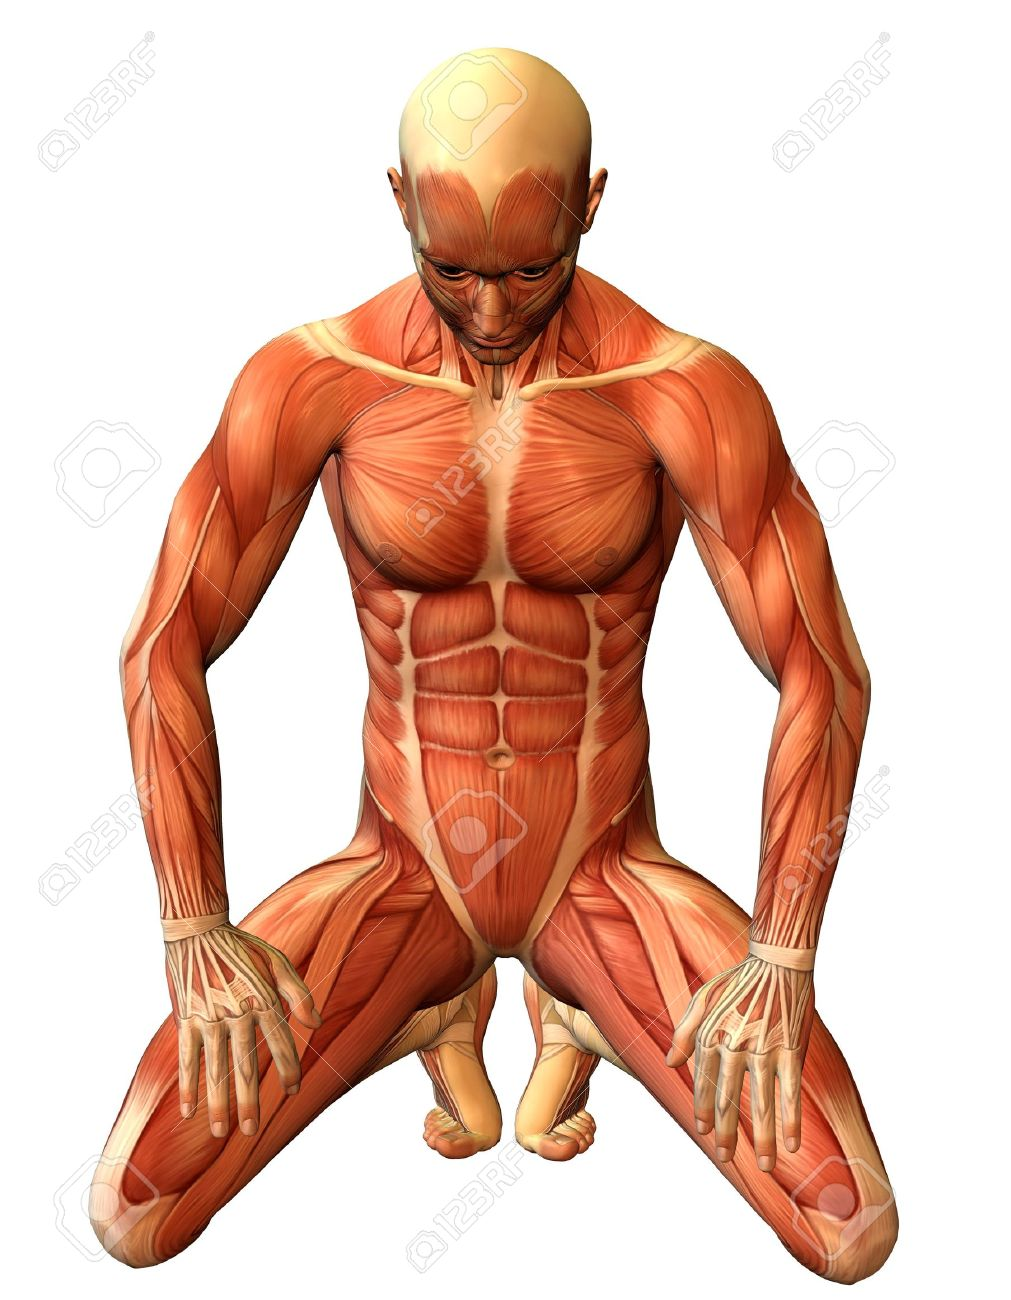 3D Rendering Study Muscle Man On His Knees Stock Photo, Picture And ...